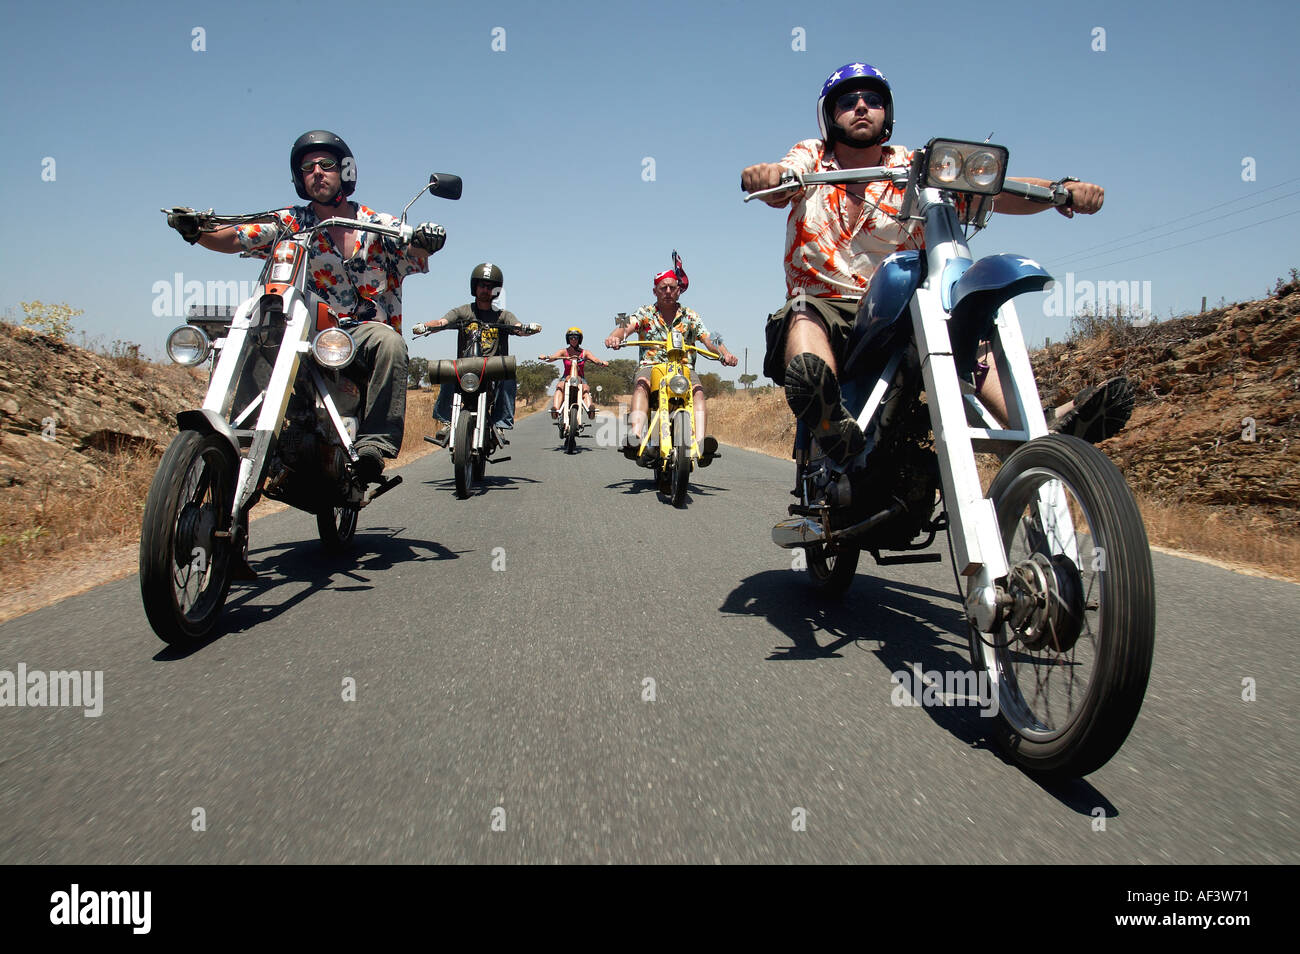 easy rider bikers making fun of the iconic 70 s movie - Stock Image